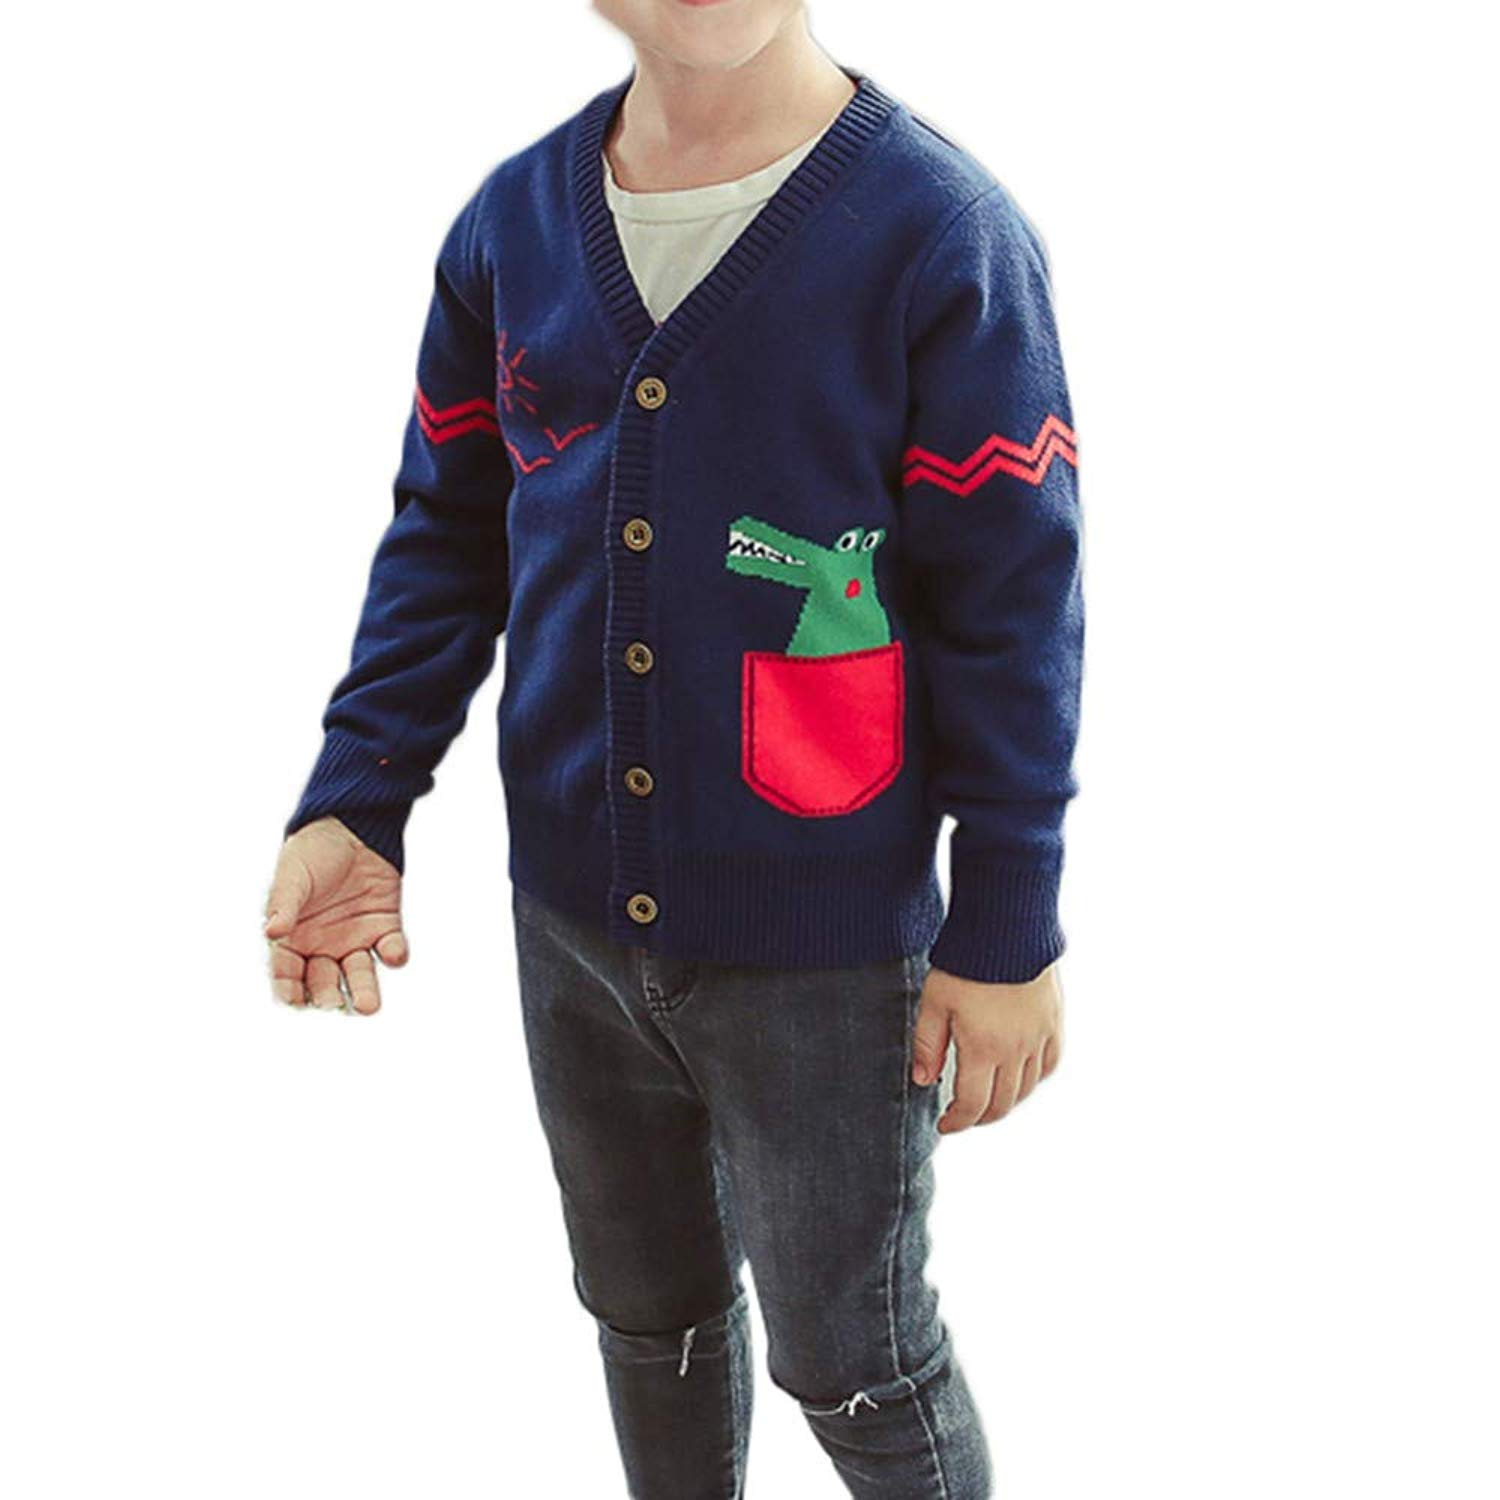 74ee31175e55 Get Quotations · Moonper Toddler Infant Kids Baby Boys Girls Dinosaur  Sweaters Soft Warm Children's Cardigan Coats Clothes